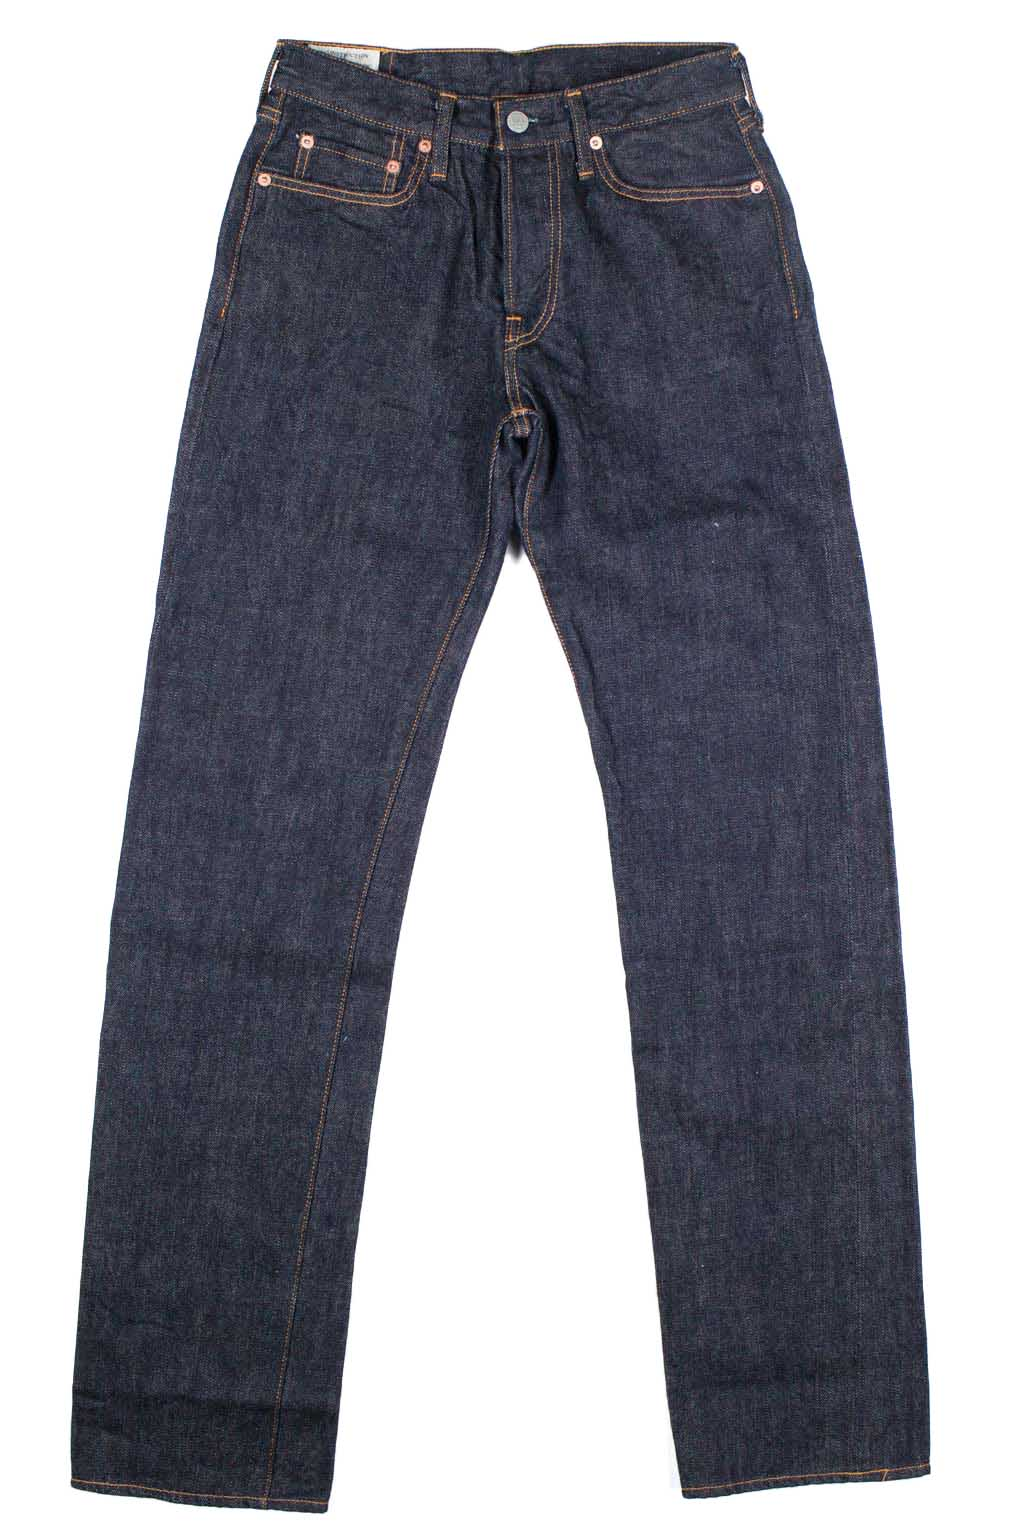 SD601-99 - Tight Straight 14.0 oz - One Wash